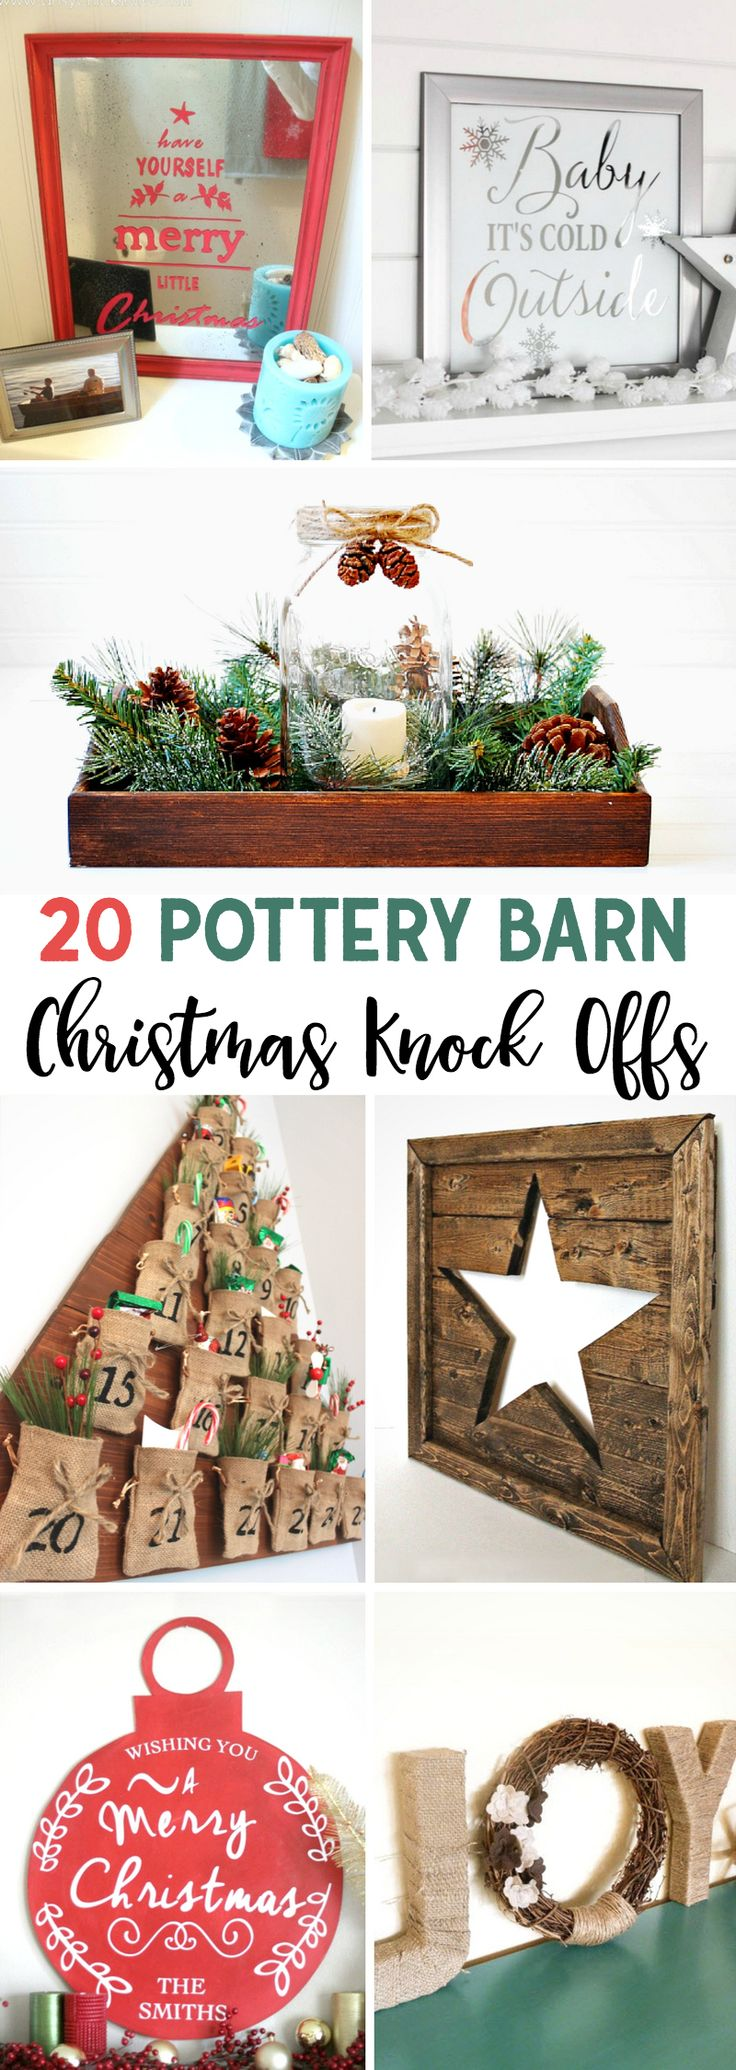 Pottery Barn Christmas Knock Offs you can DIY! pottery barn | Christmas | knock offs | fixer upper | modern farmhouse | DIY